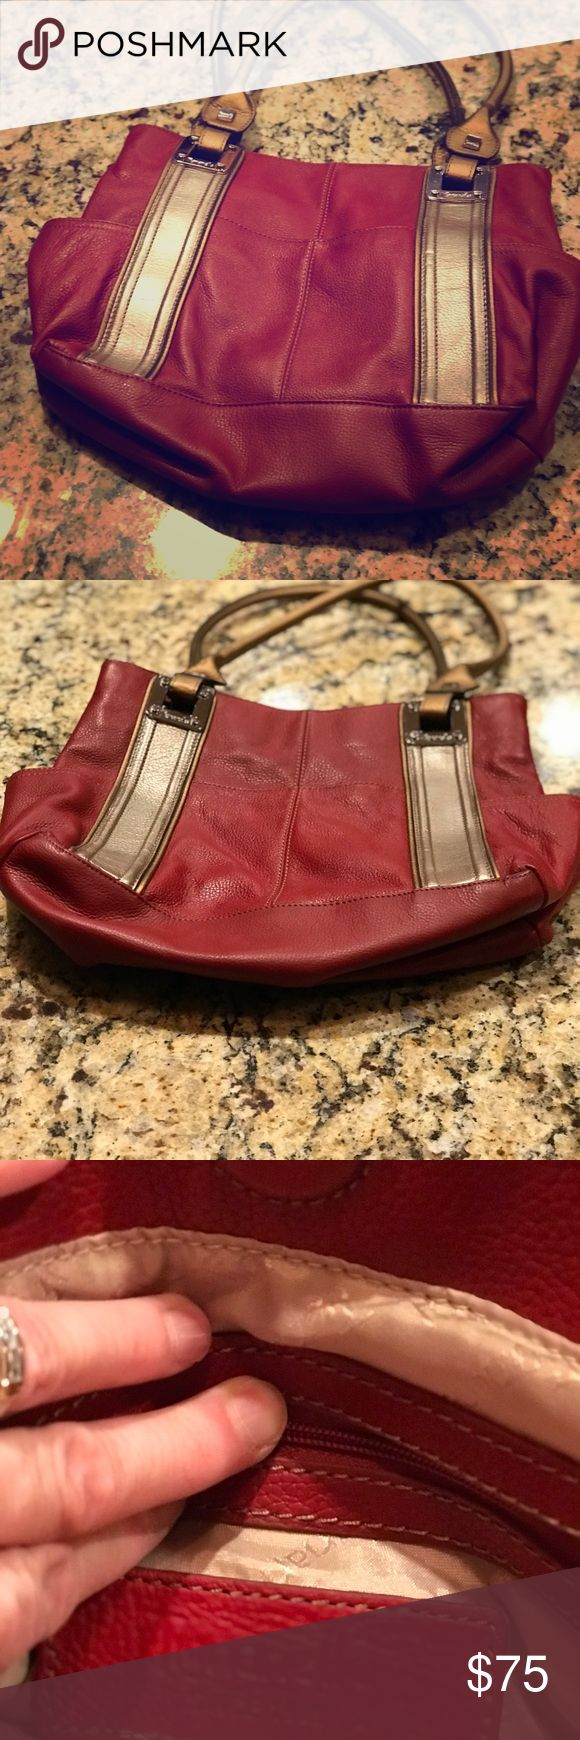 Tignanello Handbag Red leather handbag with silver and brass colored trim. Like new. I used it less than 5 times. Tignanello Bags Satchels